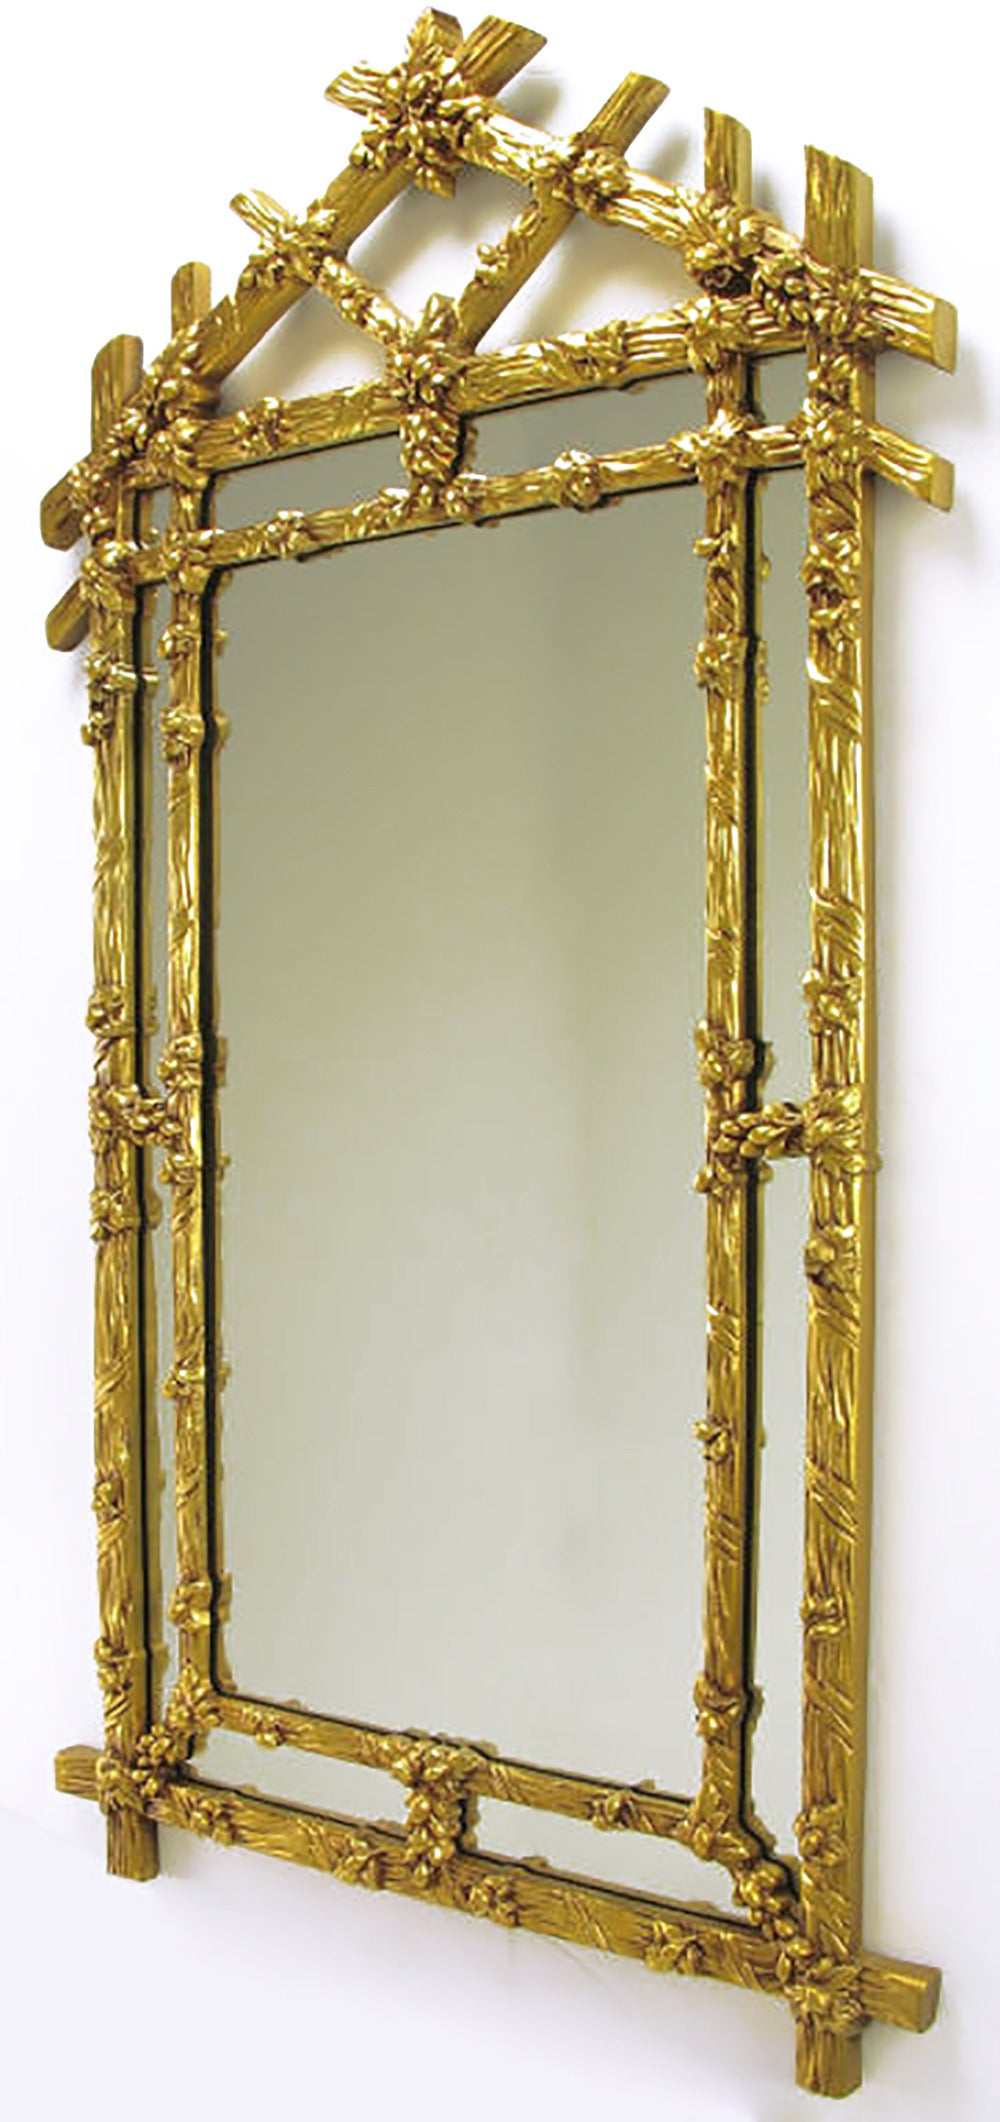 Black Forest style mirror in gilt finish with foliate detailing and segmented frame in frame.